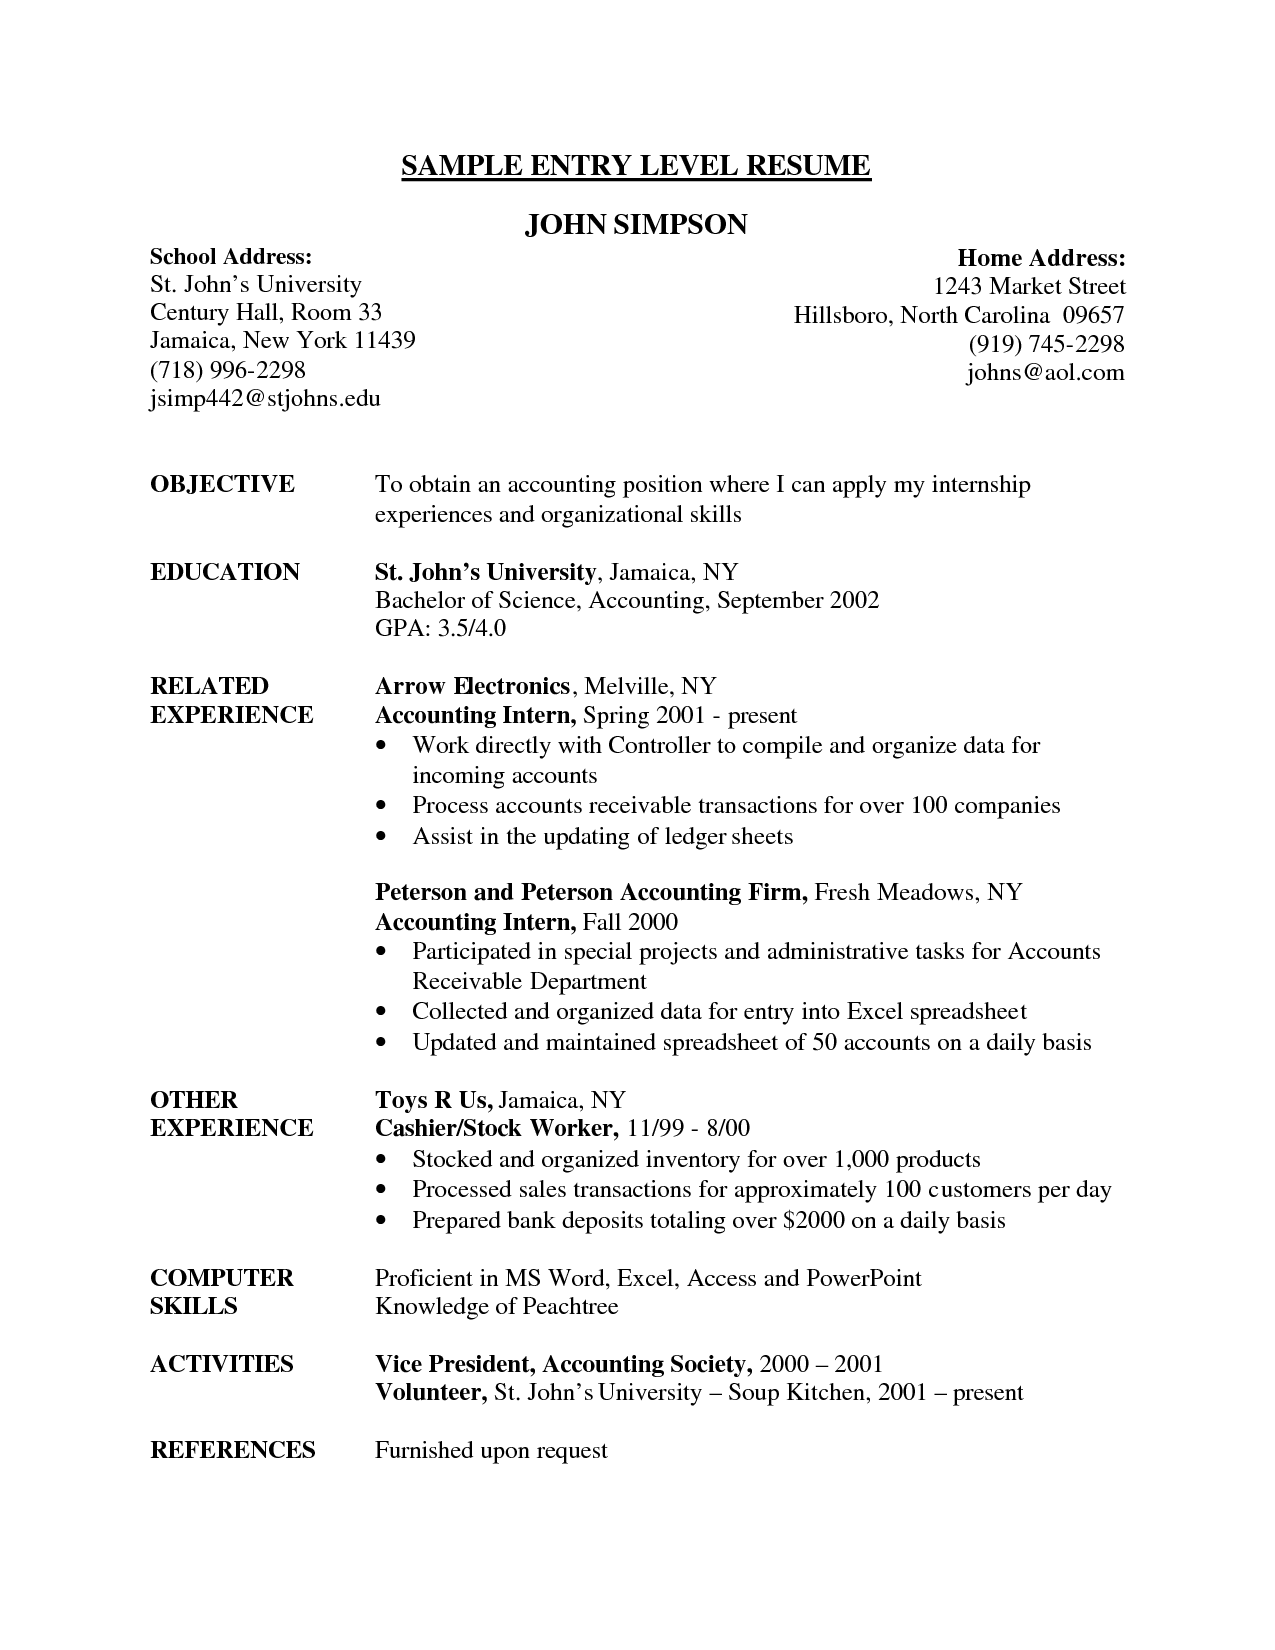 Marketing Resume Examples Simple Example Of Resume Profile Entry Level  Httpwwwresumecareer